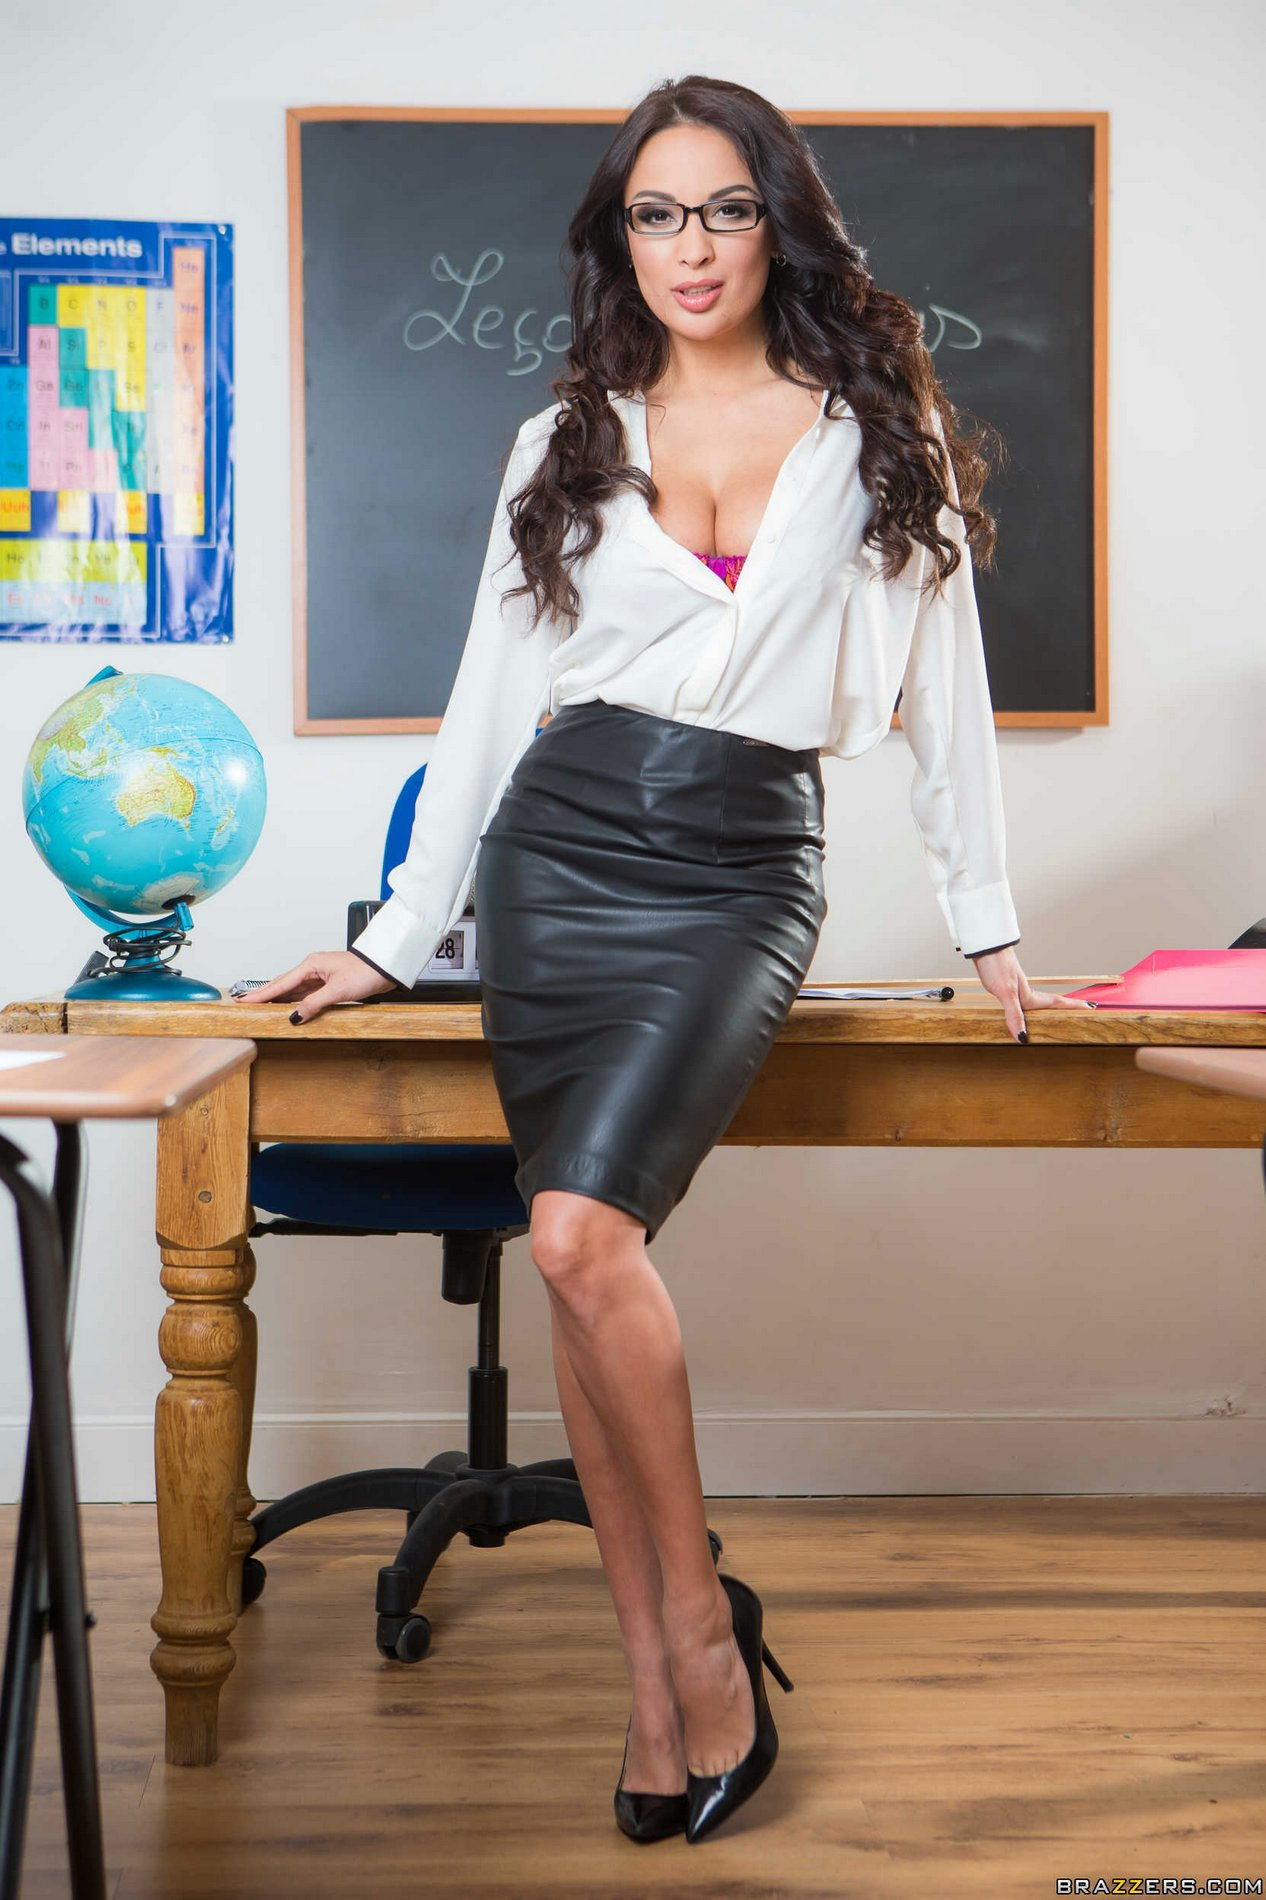 Hot young teacher in unbuttoned shirt sitting stock photo